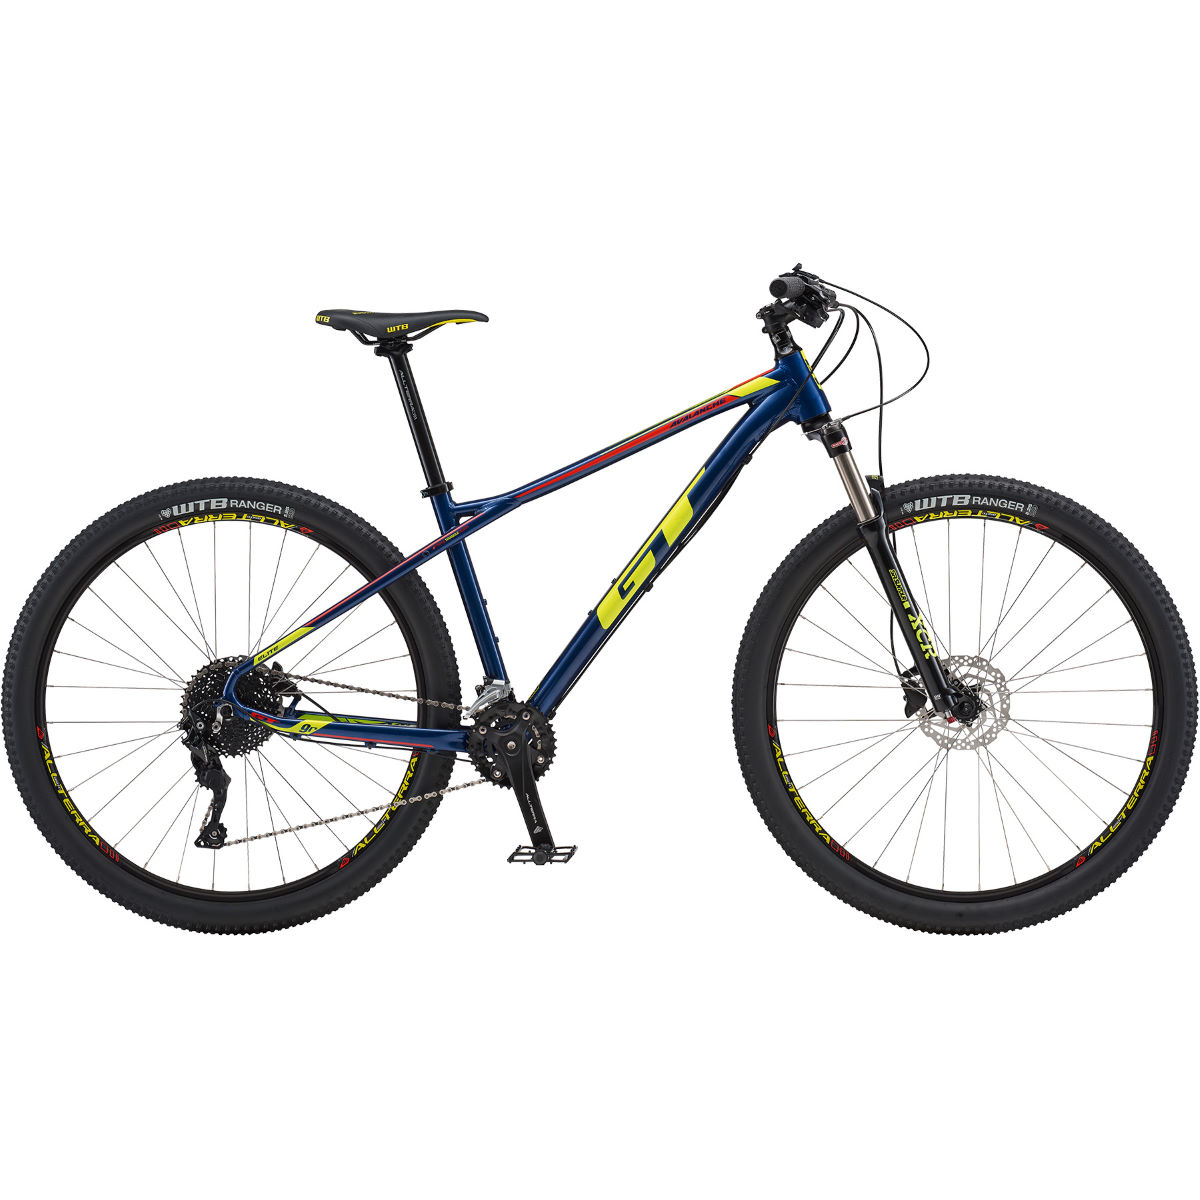 VTT semi-rigide GT Avalanche Elite 27.5 - Small Stock Bike